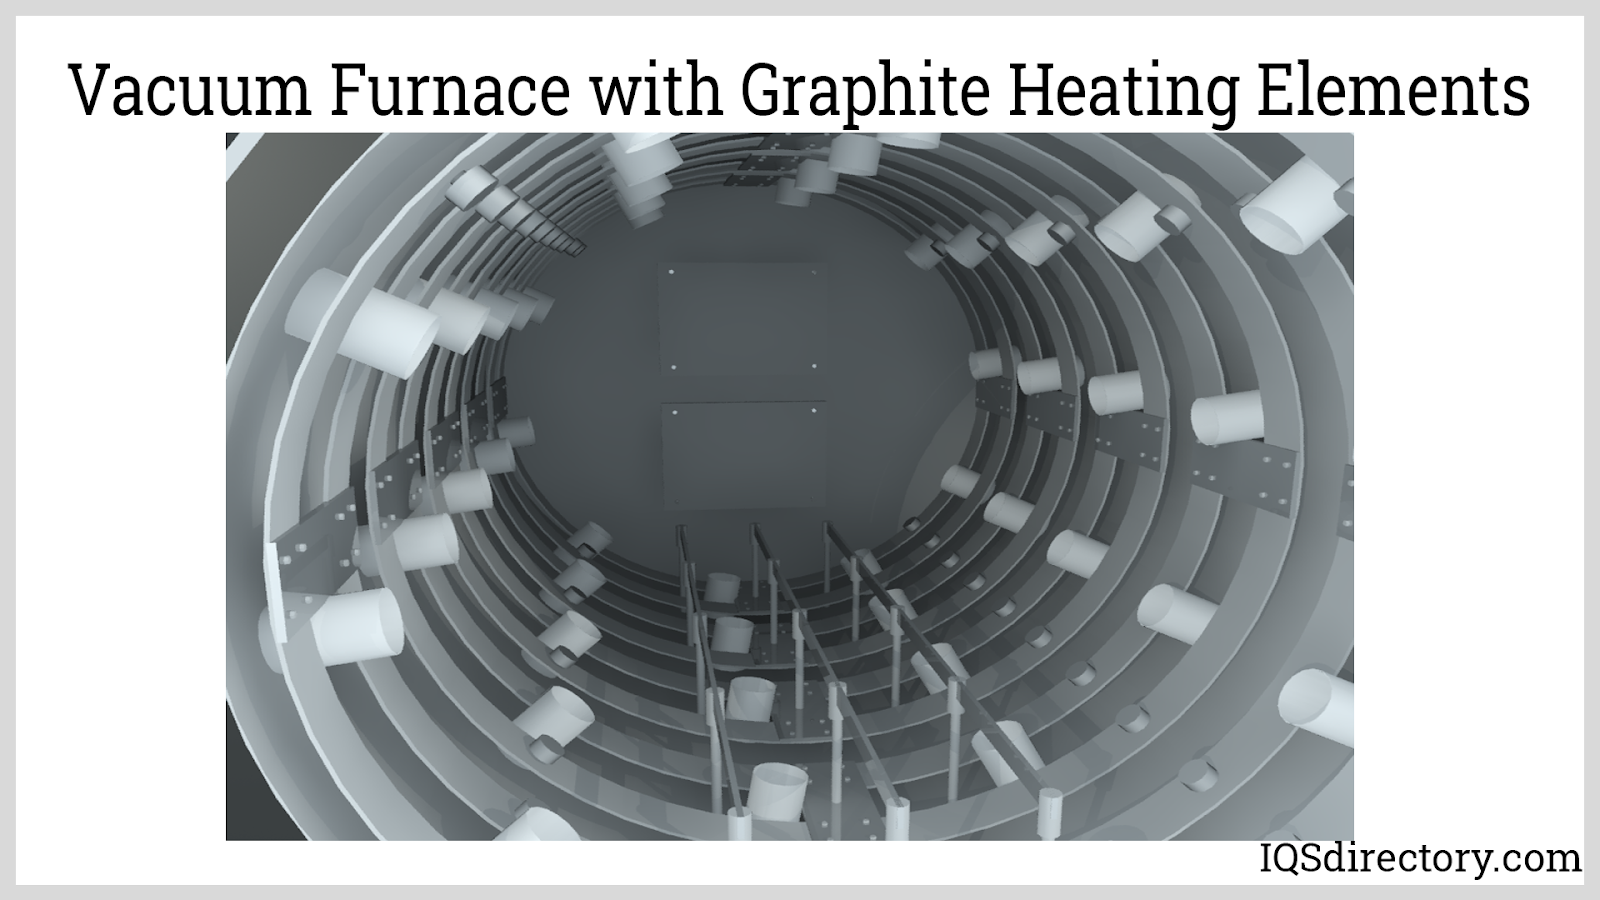 Vacuum Furnace with Graphite Heating Elements